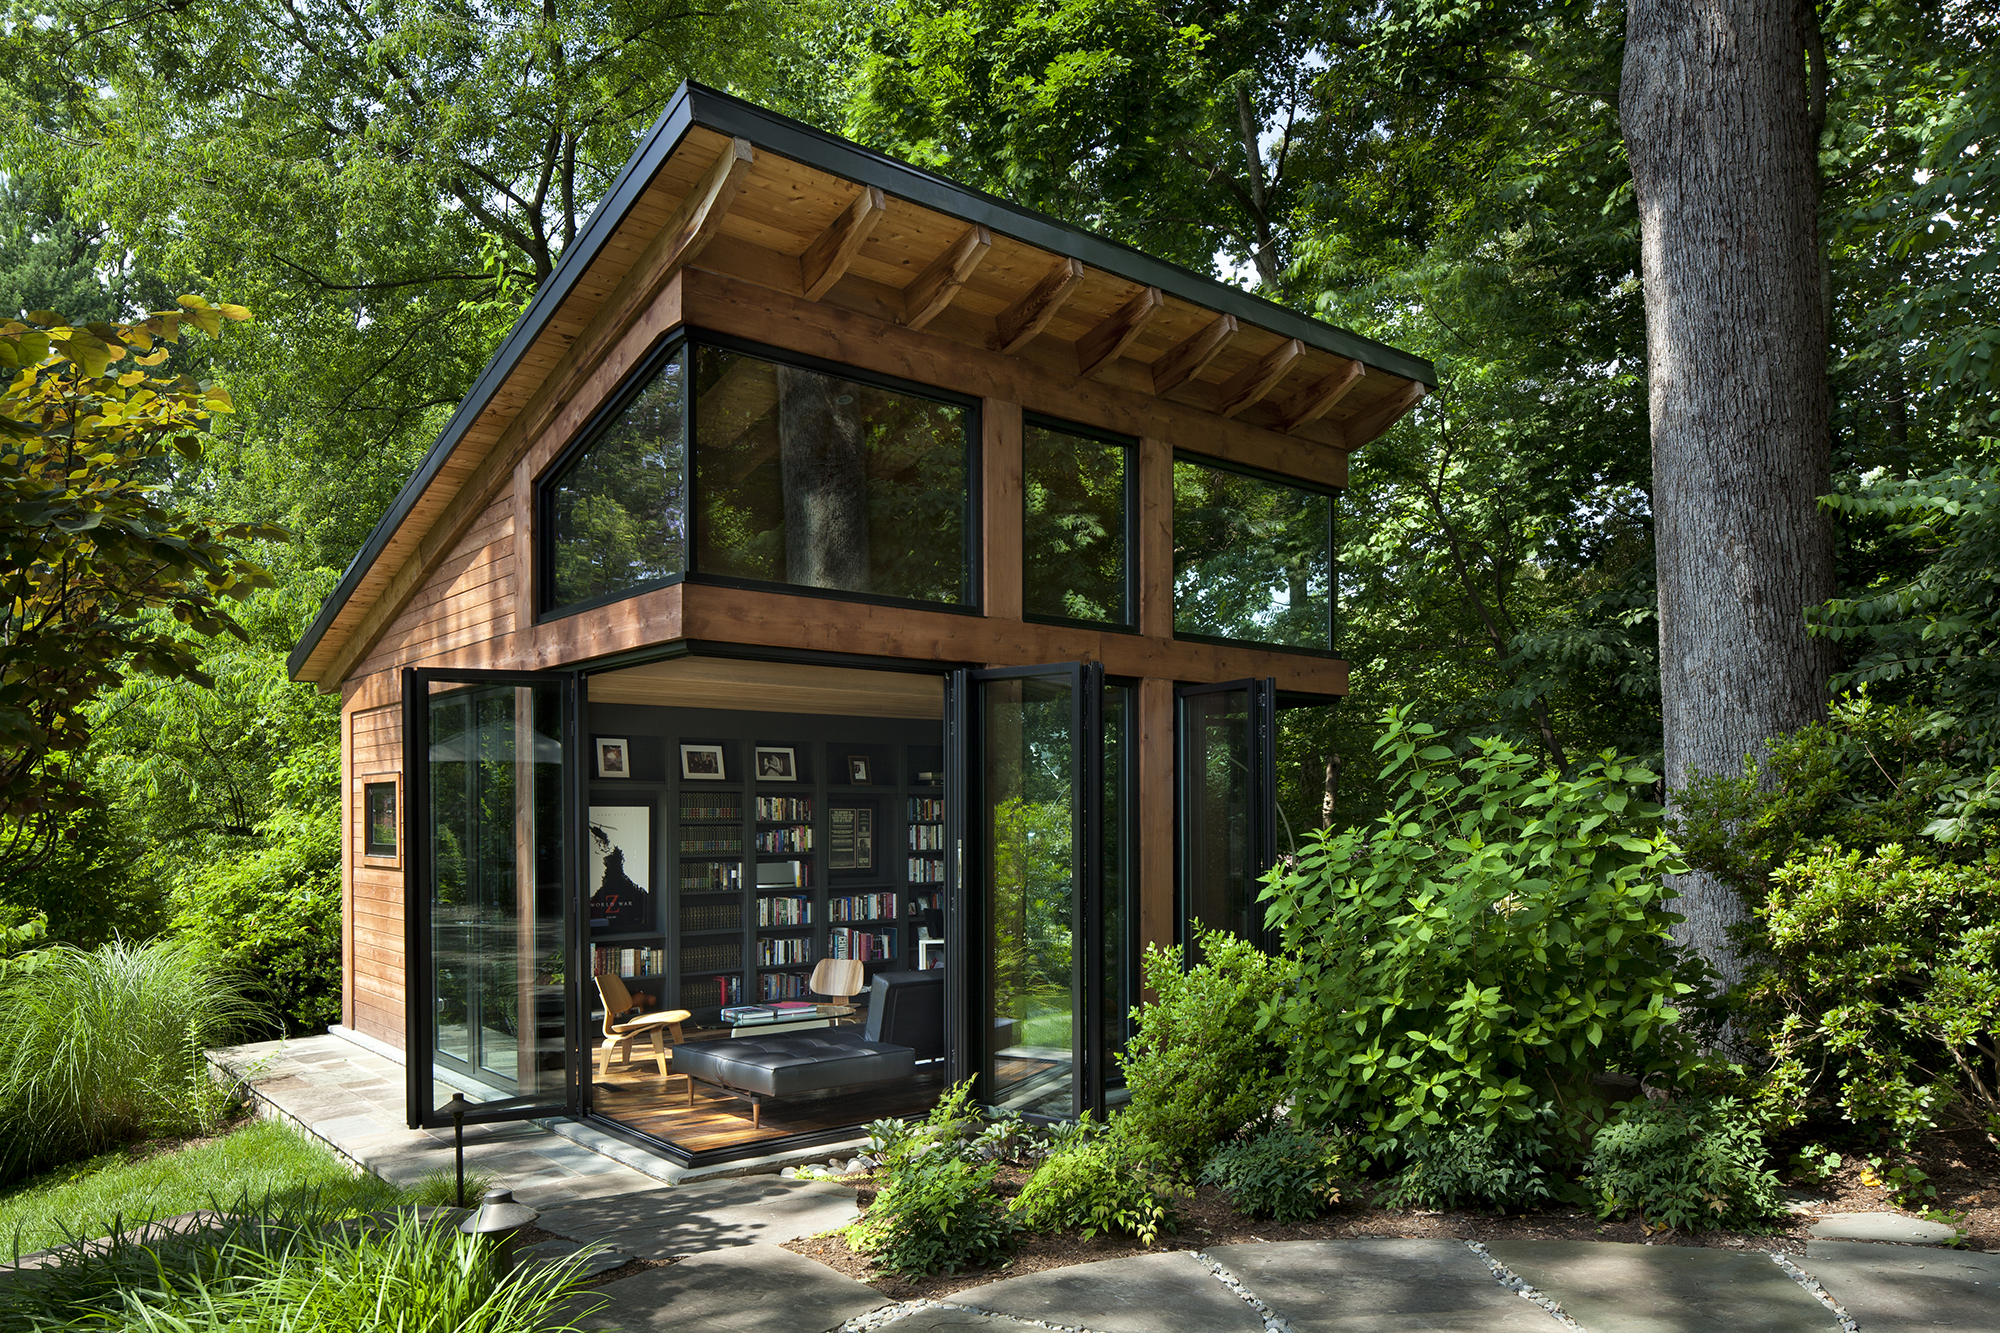 400 square foot studio with Nanawall folding glass doors and window walls connect space by Harrison Design to outdoors